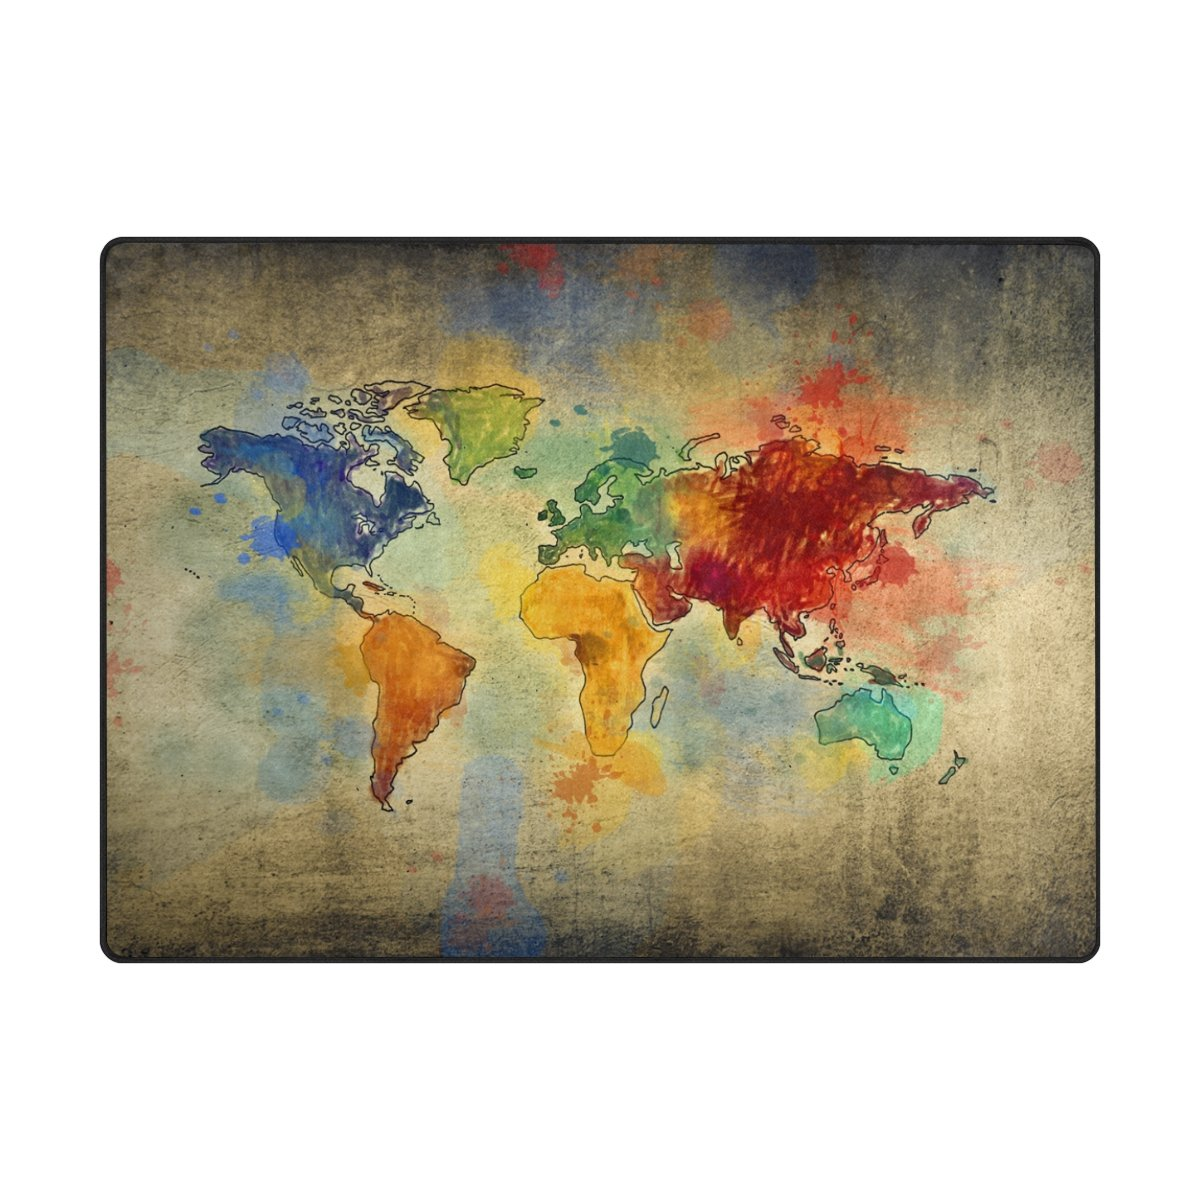 INGBAGS Super Soft Modern Vintage World Map Area Rugs Living Room Carpet Bedroom Rug Children Play Solid Home Decorator Floor Rug Carpets 63 x 48 inch